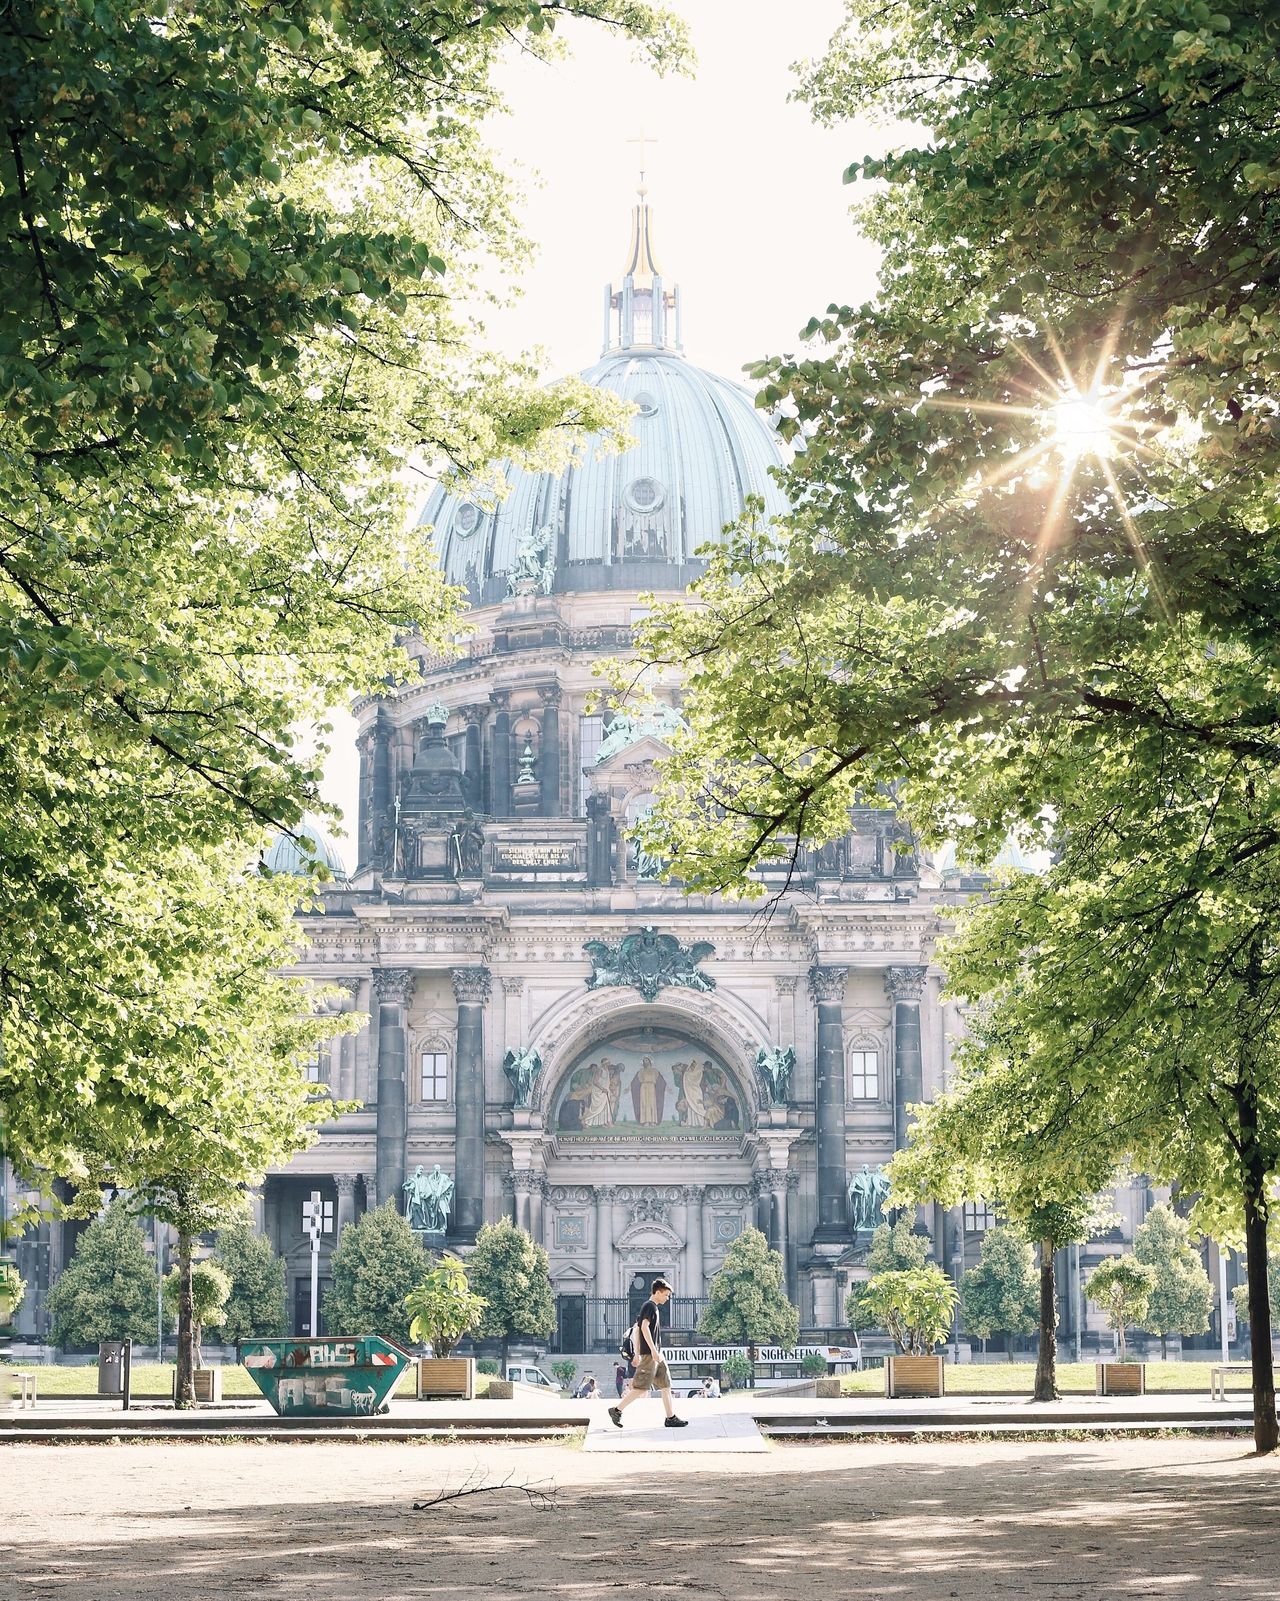 Architecture Travel Destinations Tree Religion Outdoors Building Exterior Sunlight City Day Built Structure No People Sky Politics And Government Eye4photography  Nature Berlin Photography Dome Tranquility